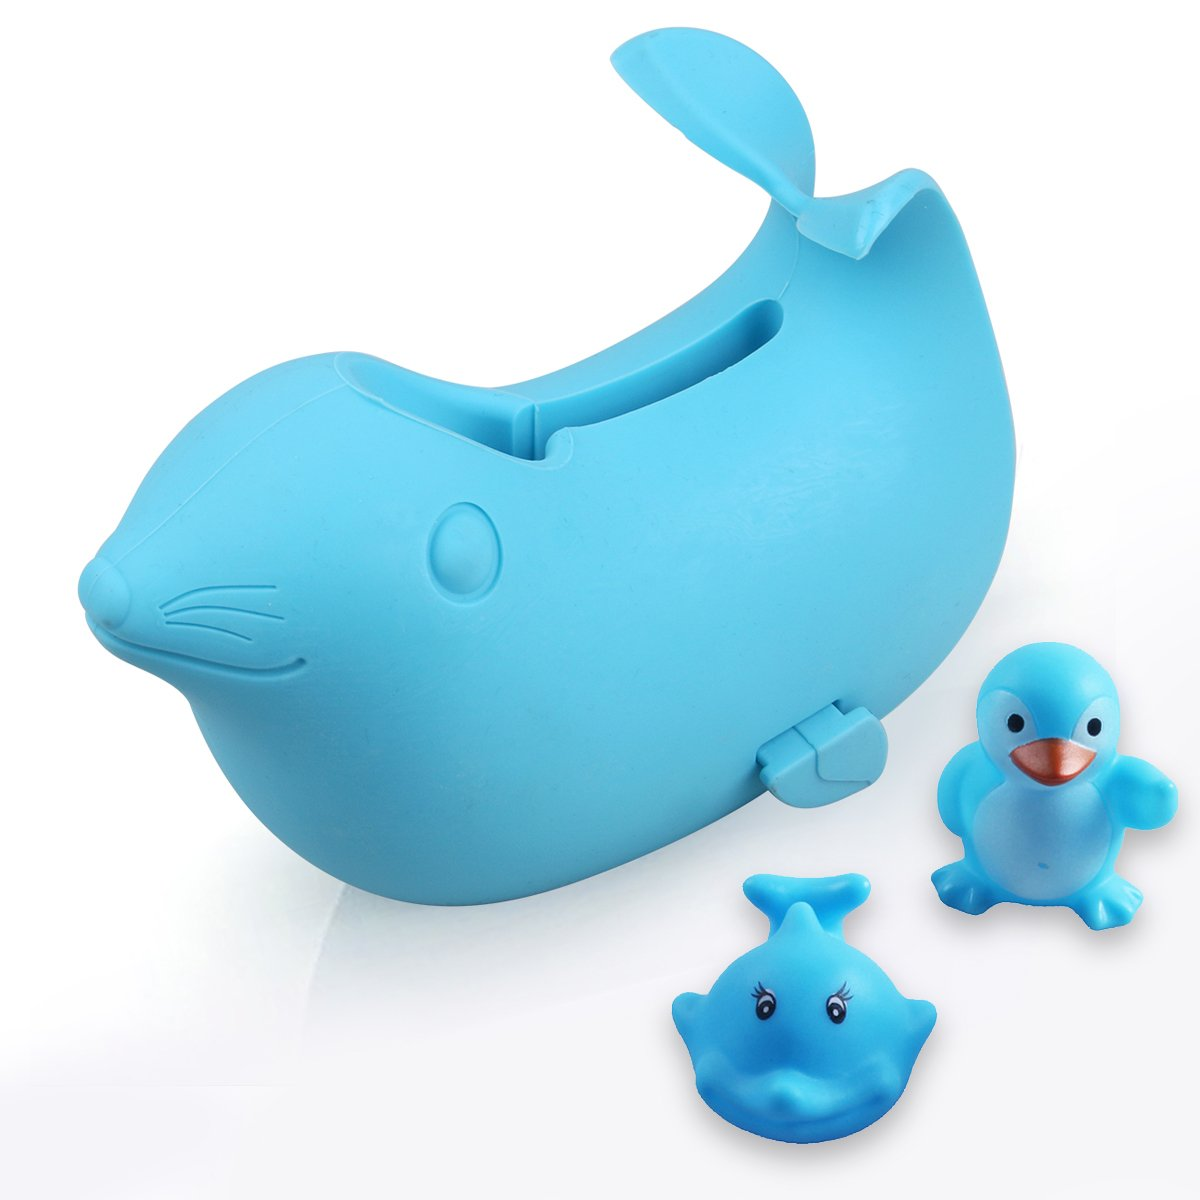 Cheap Child Tub, find Child Tub deals on line at Alibaba.com